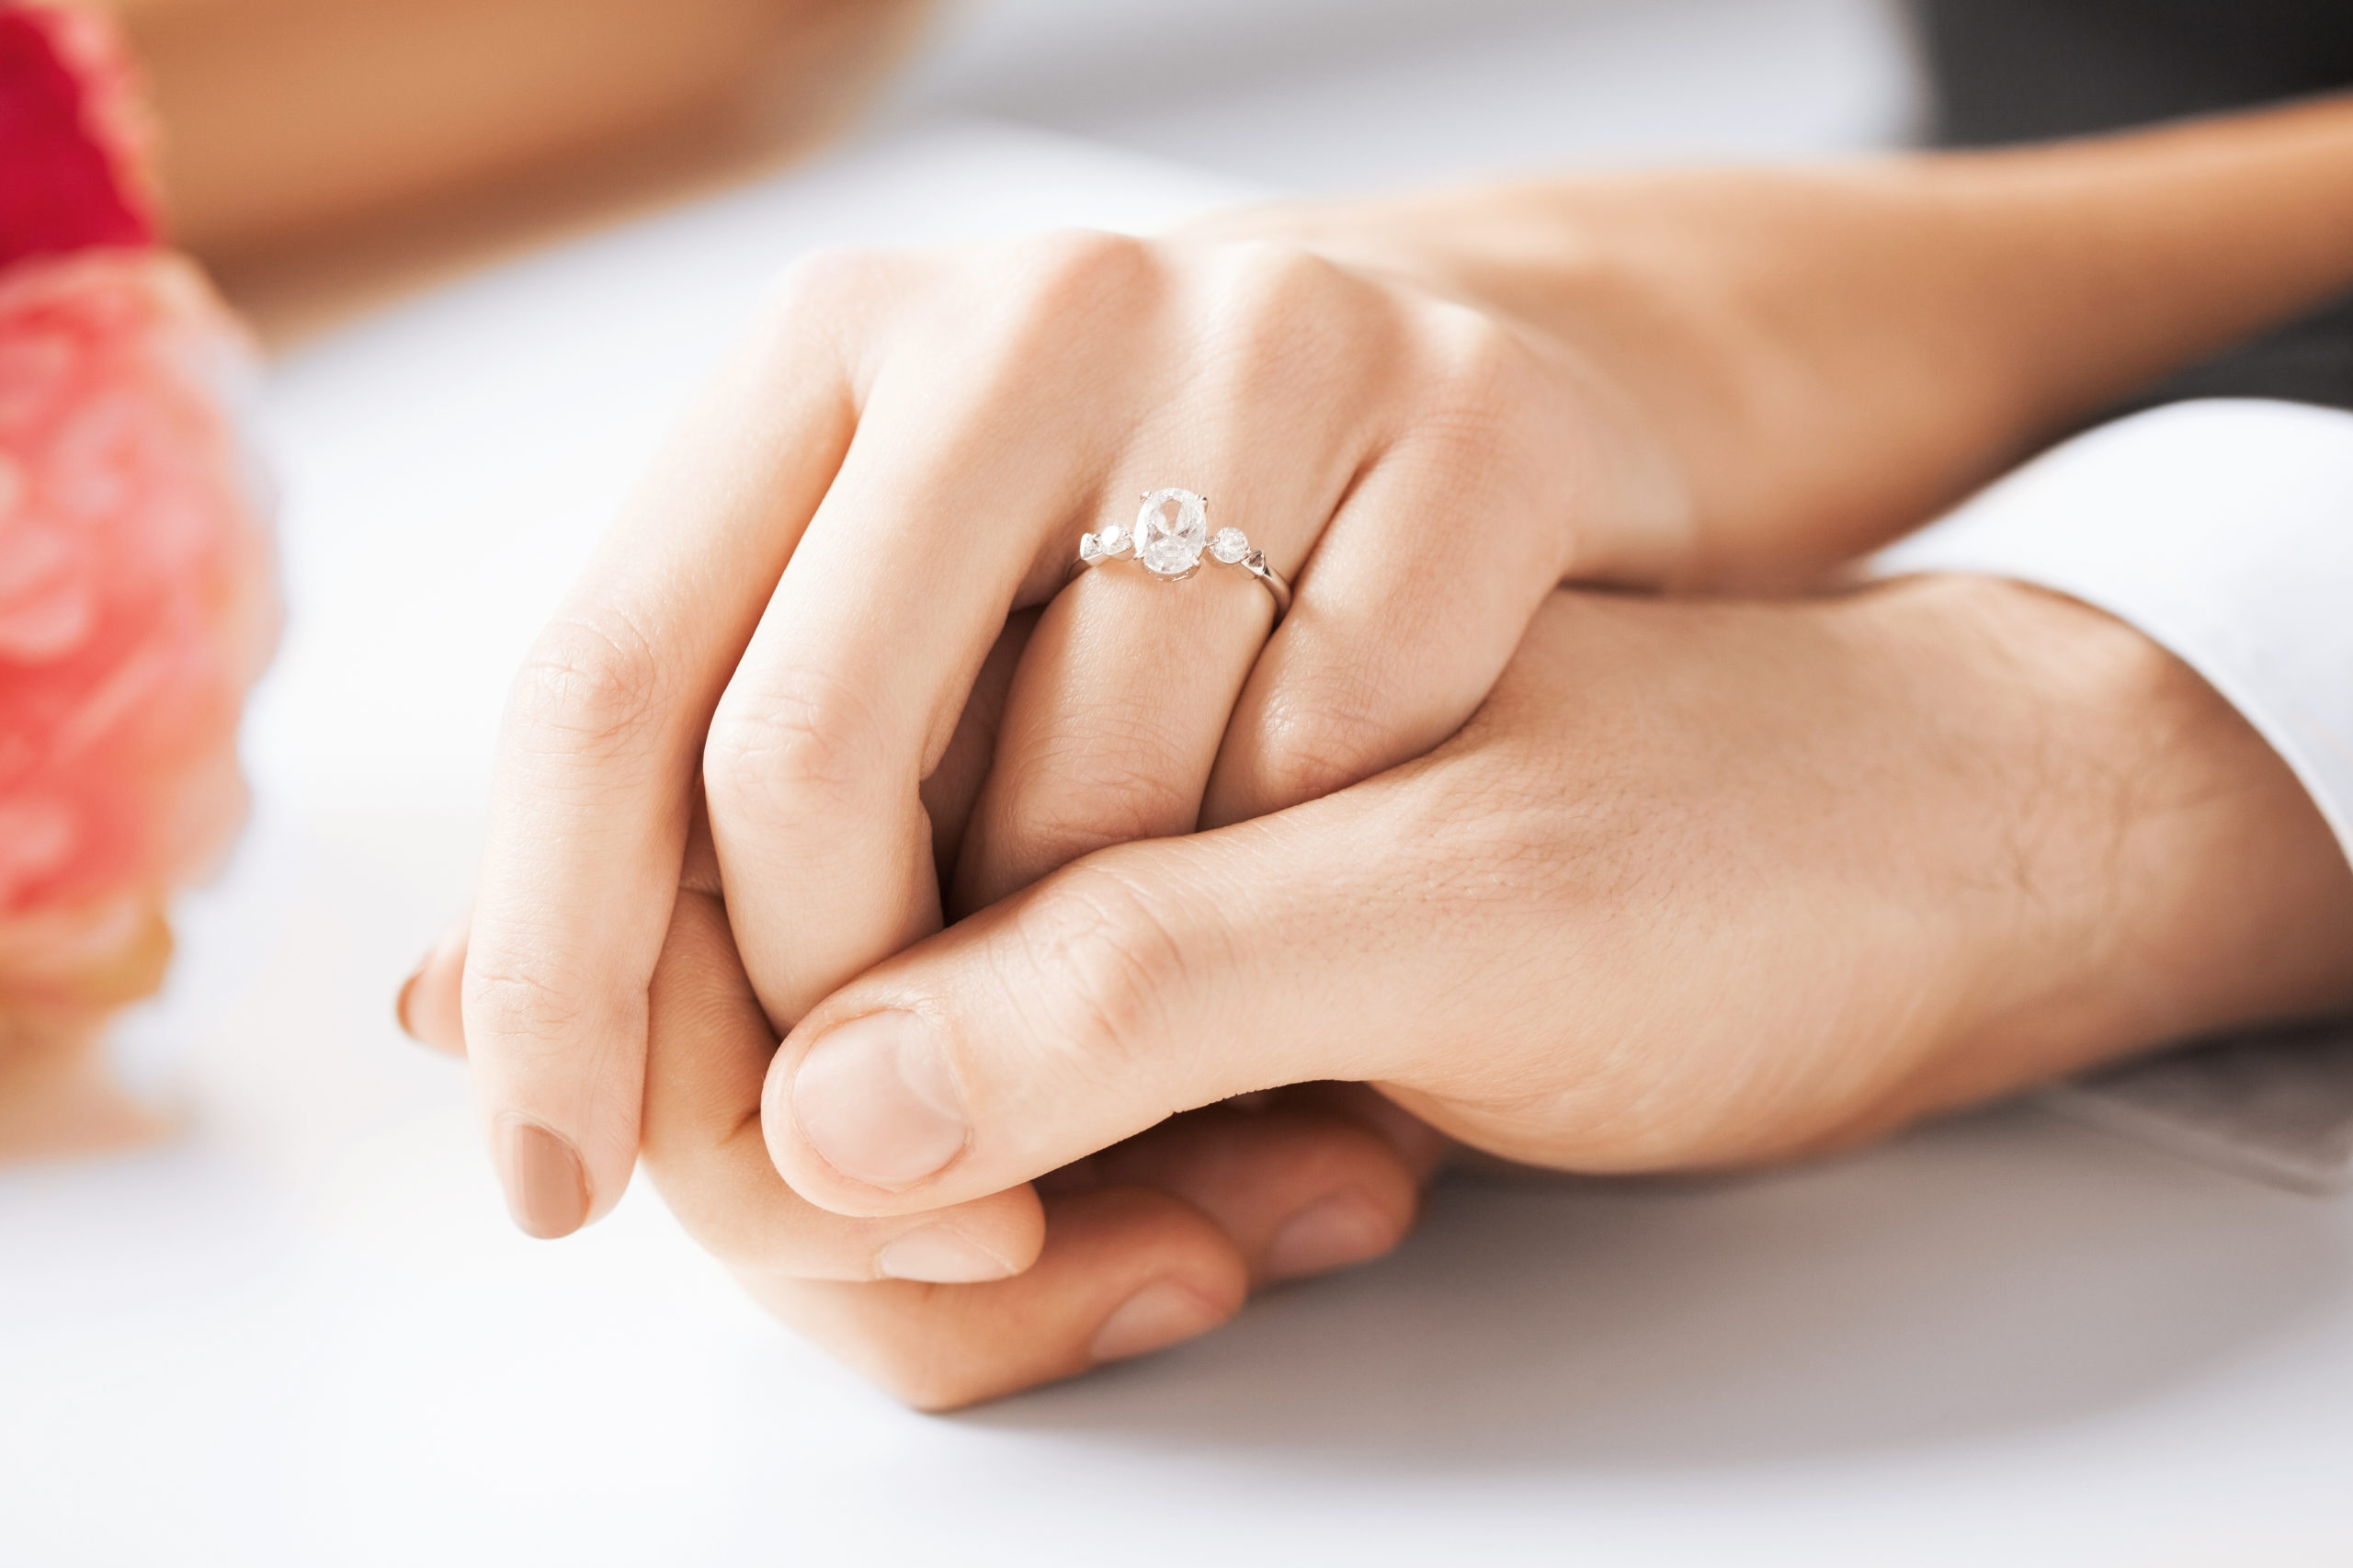 picture-man-woman-wedding-ring-140523121